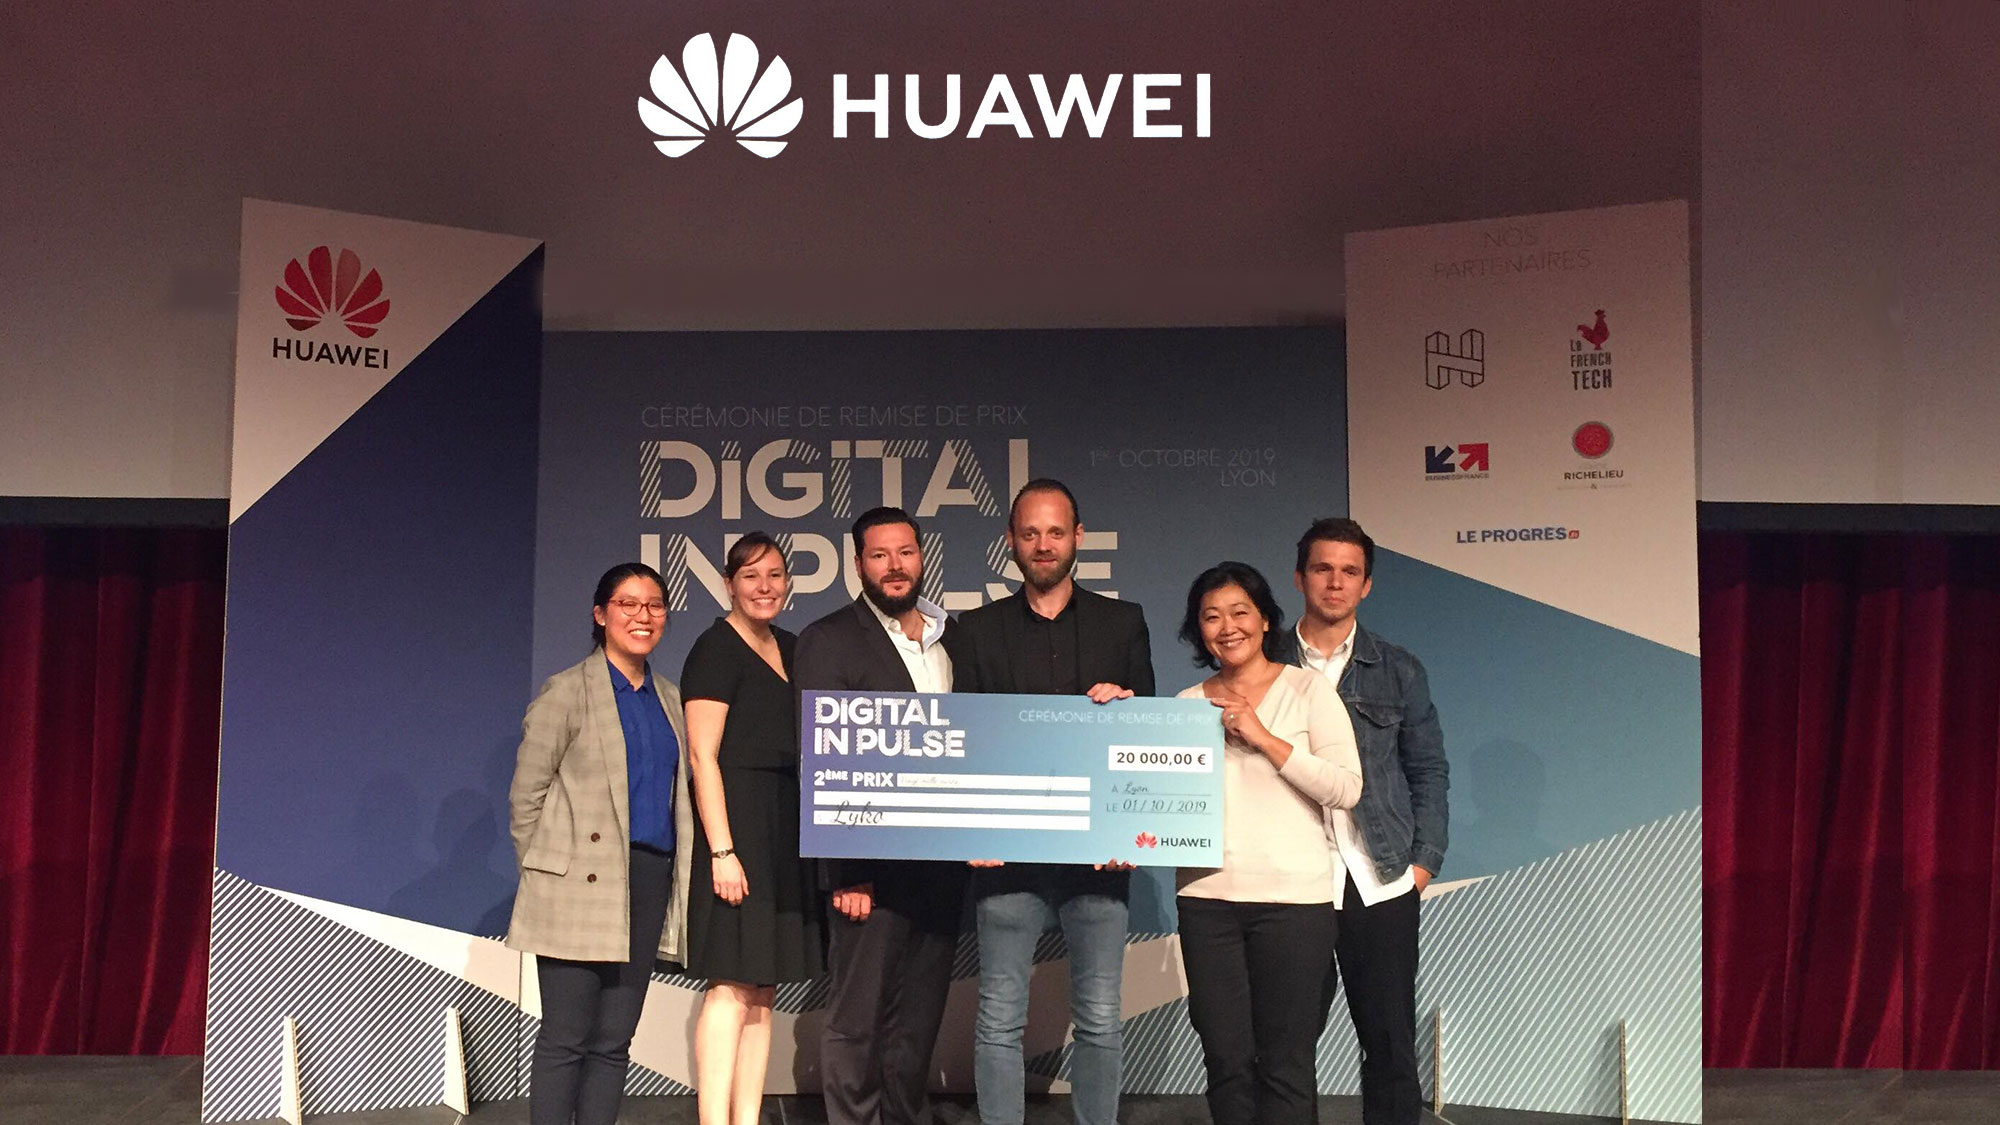 Lyko, lauréat du Digital InPulse 2019 by Huawei